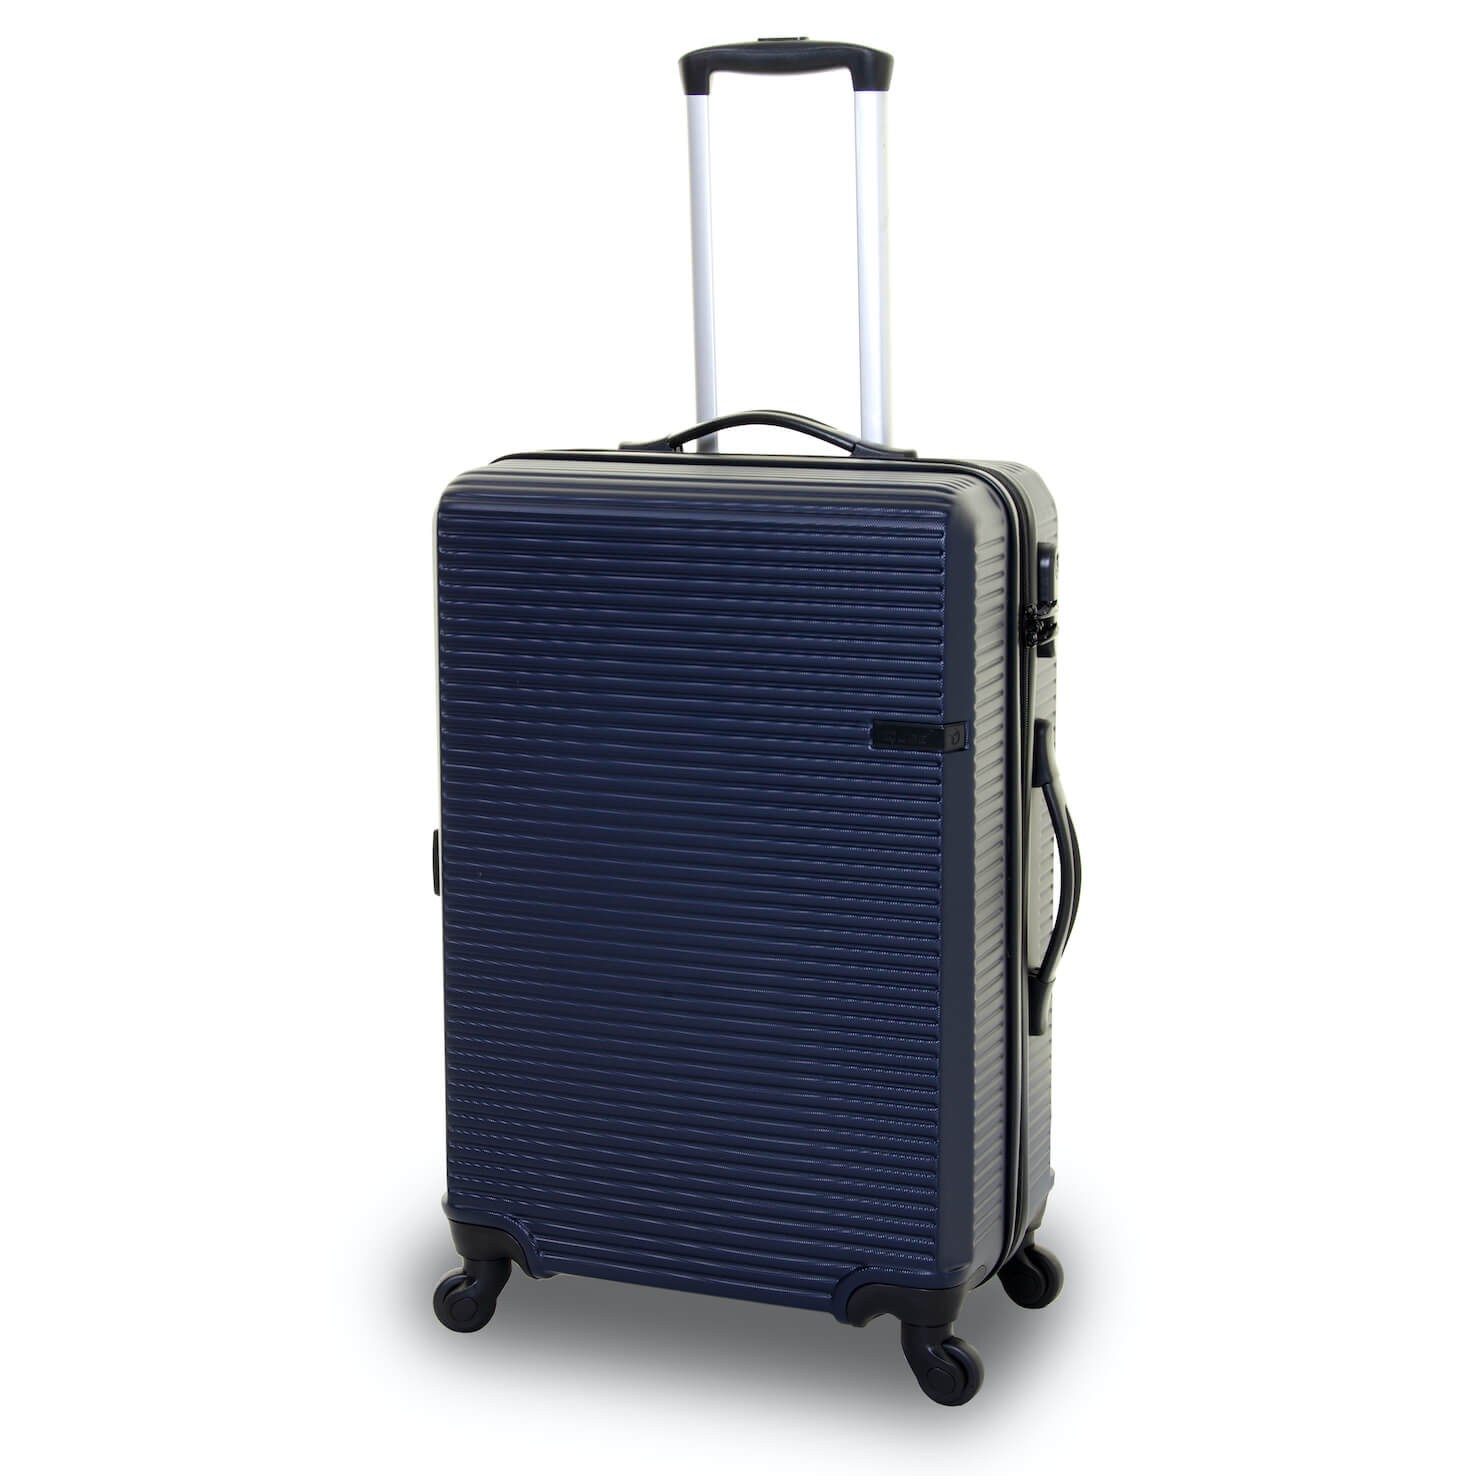 QUBEd Collinear II 67cm 4-Wheel Spinner Medium Suitcase